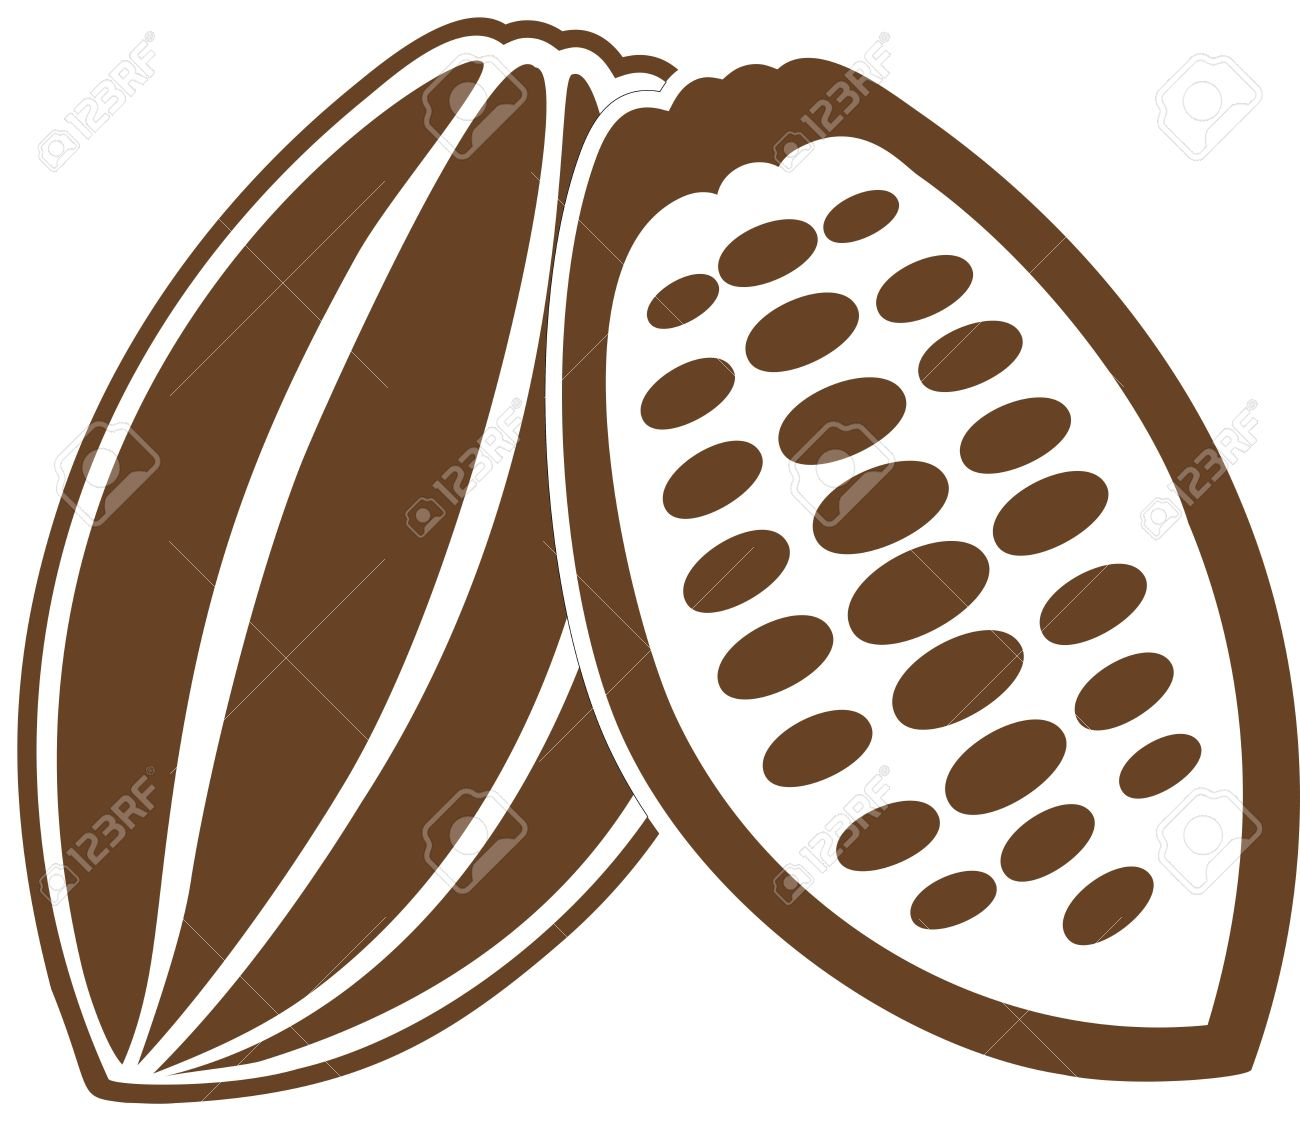 Cacao Bean Cacao Fruit Cocoa Bean Cocoa Fruit Royalty Free.